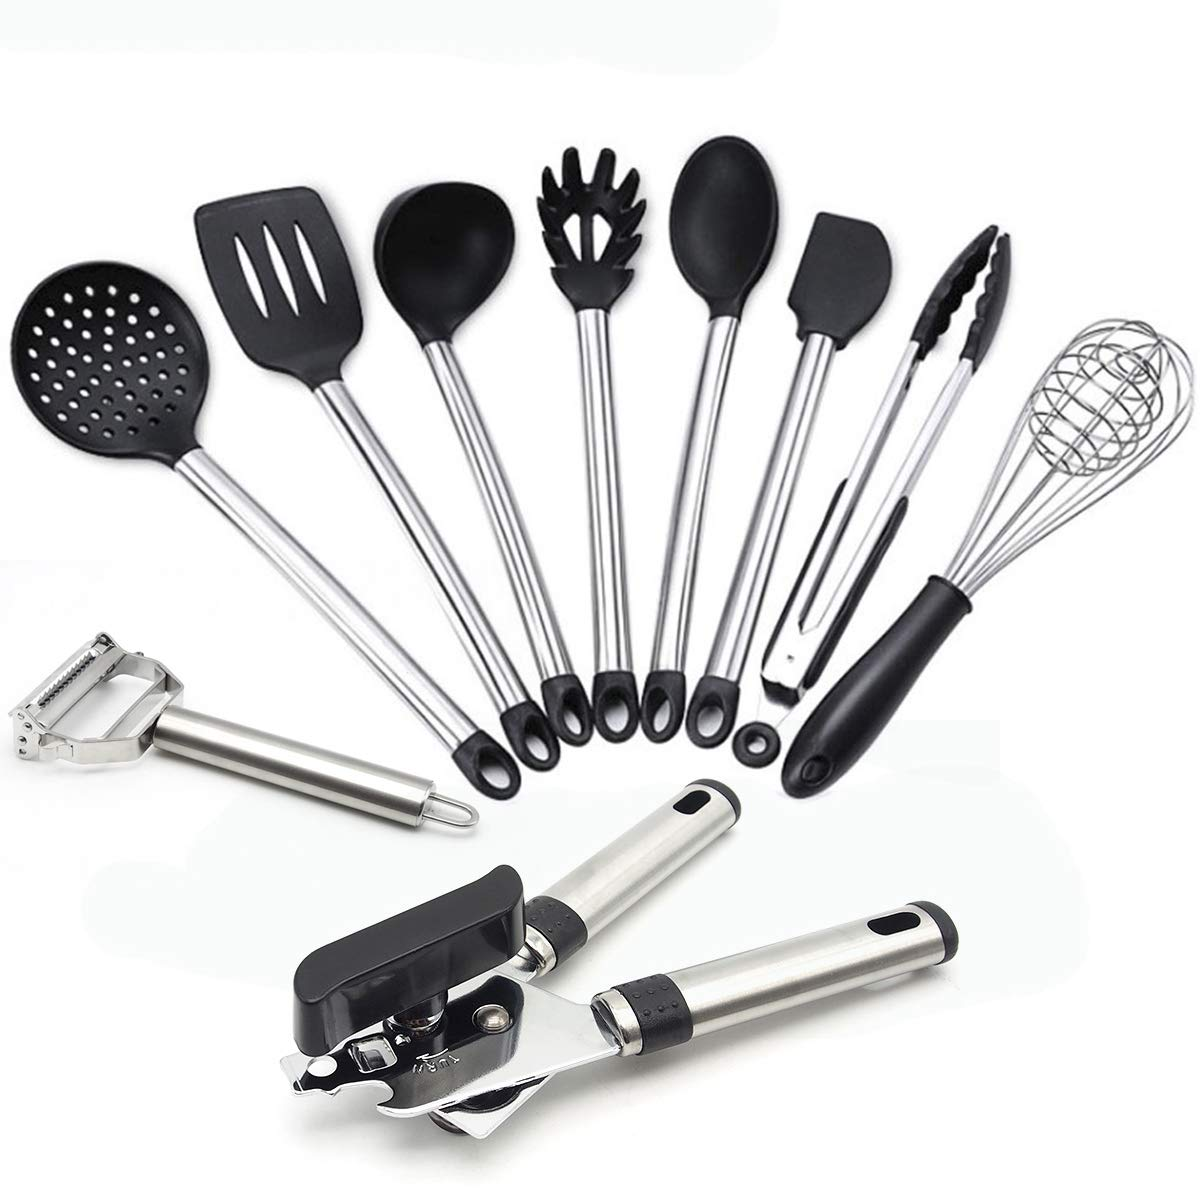 10 Pieces Kitchen Utensils Set,Stainless Steel and Nonstick Silicone Cooking Tools,Ladle, Strainer,Whisk,Spatula Tools,Serving Tongs,Spoon,Pasta Server,Flex Spatula,Can Opener,Vegetable Peeler FXY